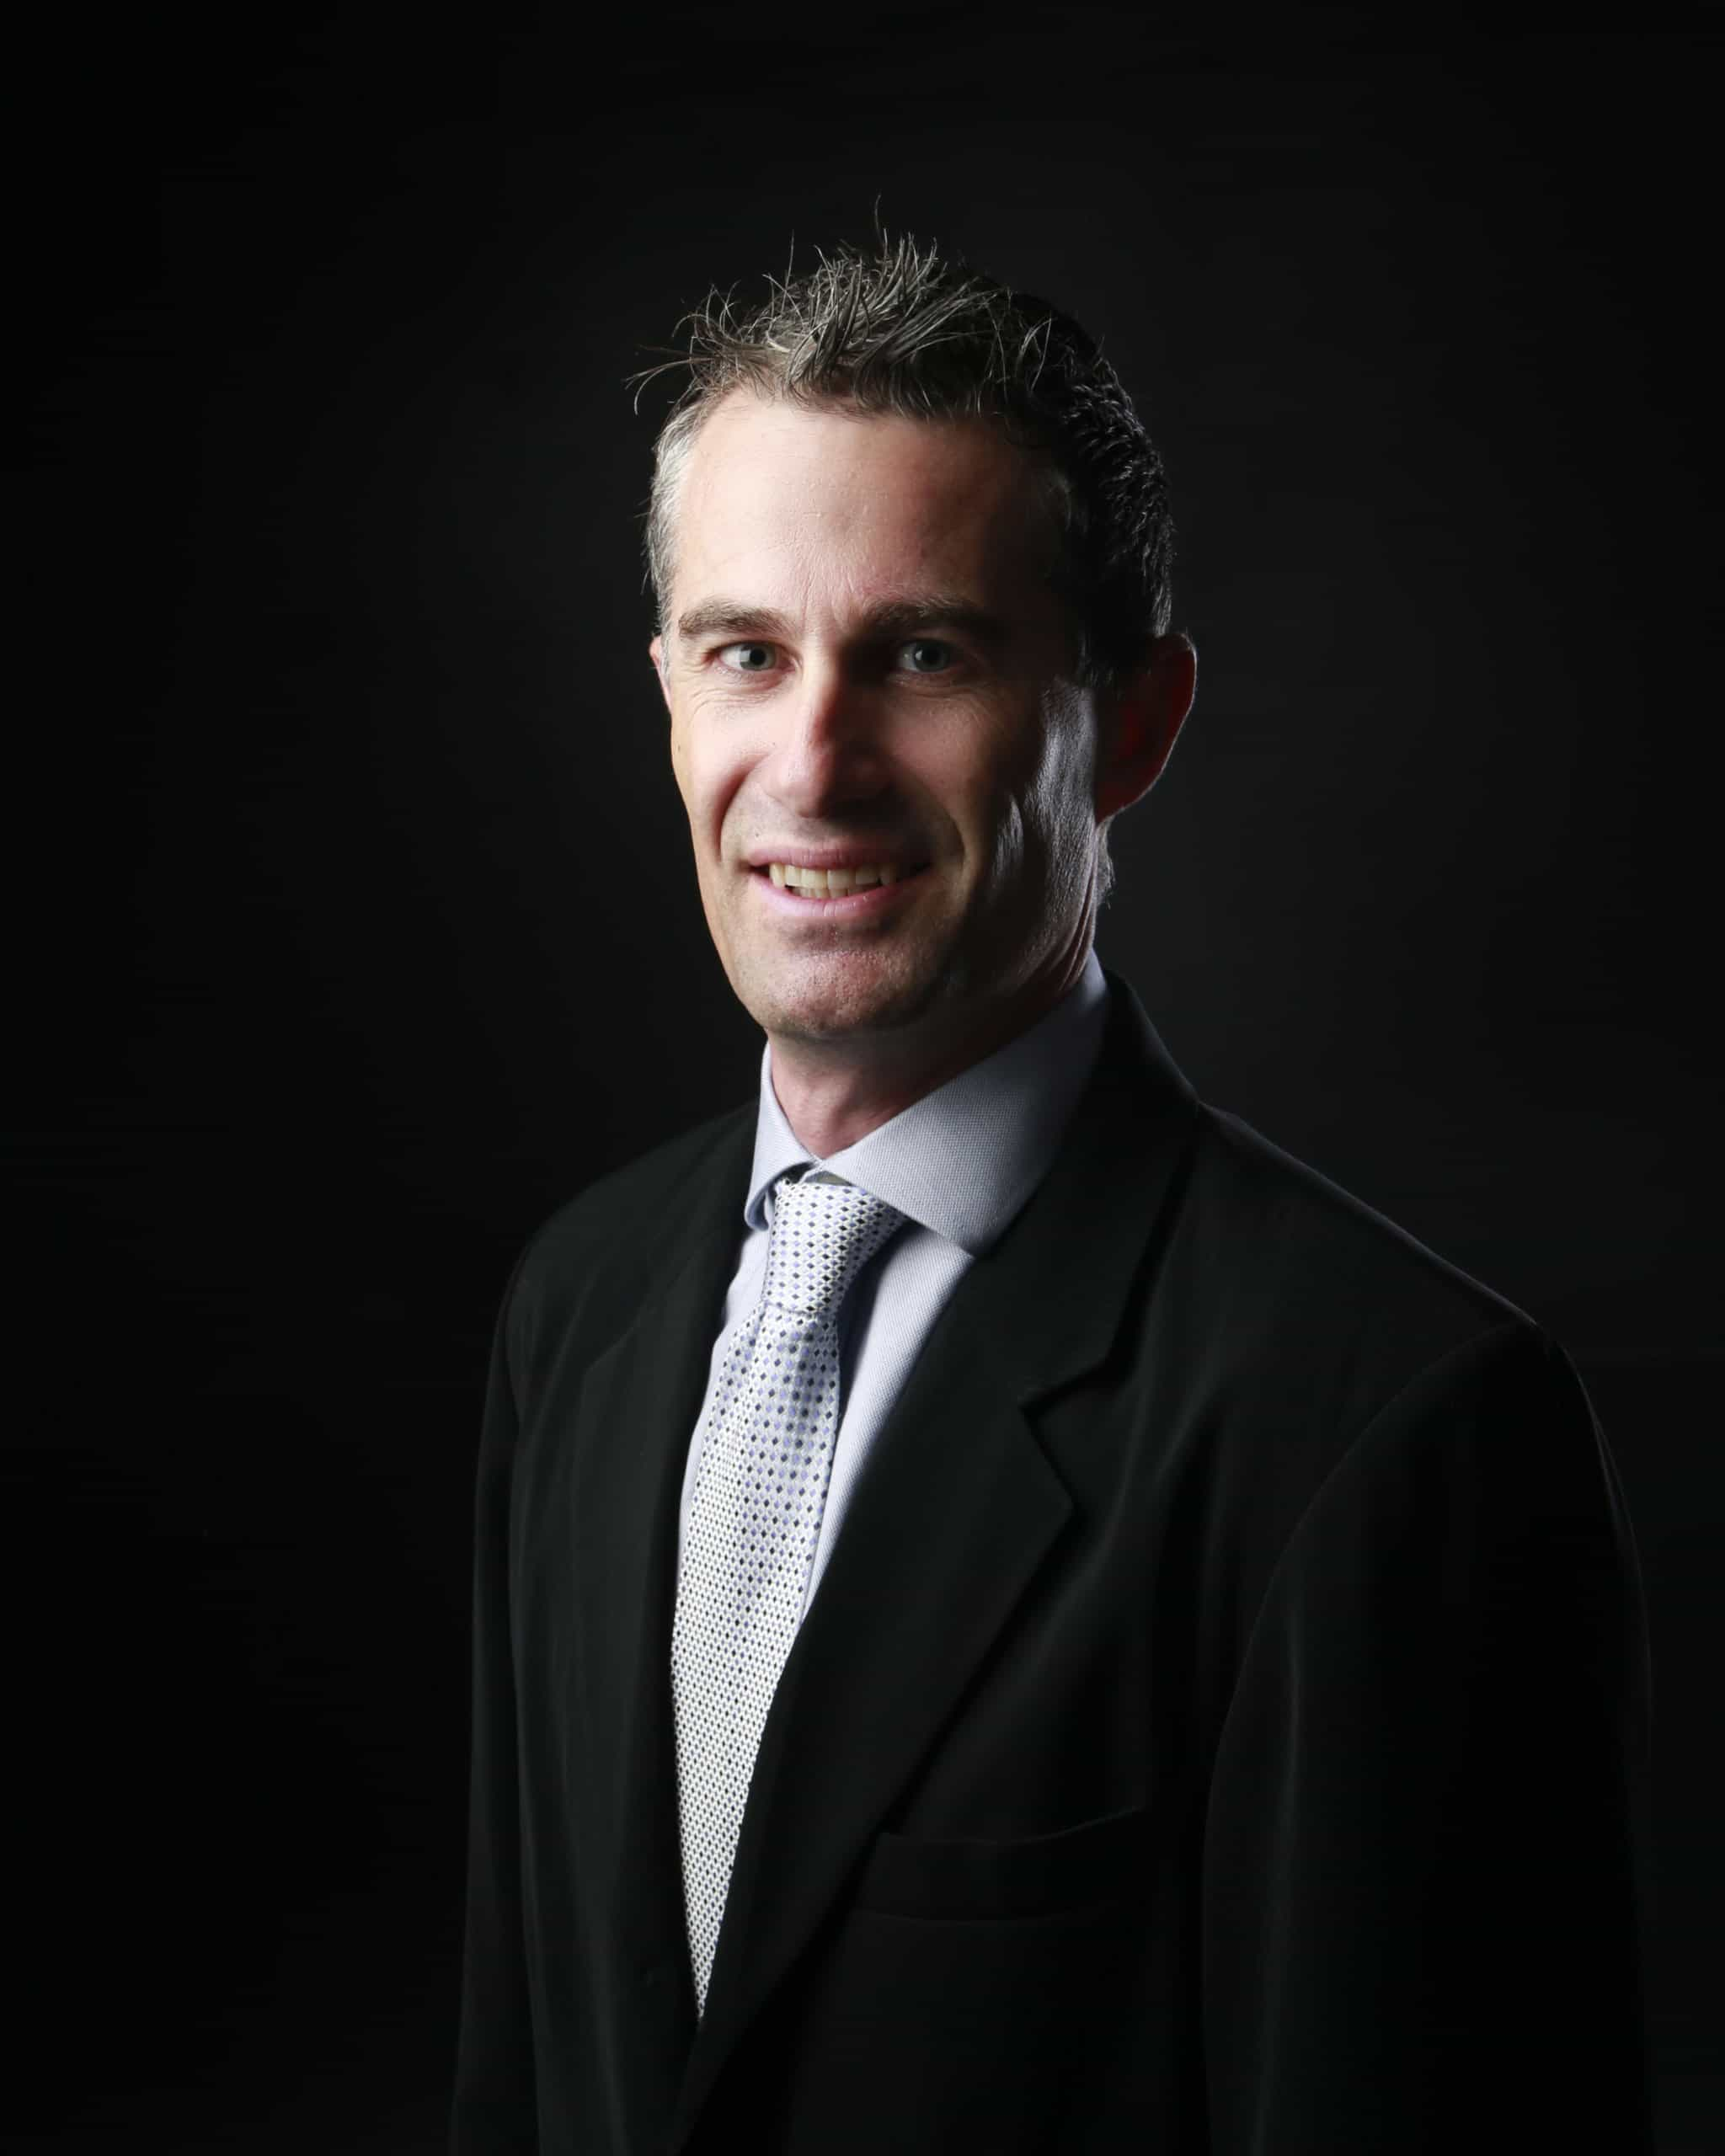 A headshot of Simon Booth, the director of Radiation Services WA